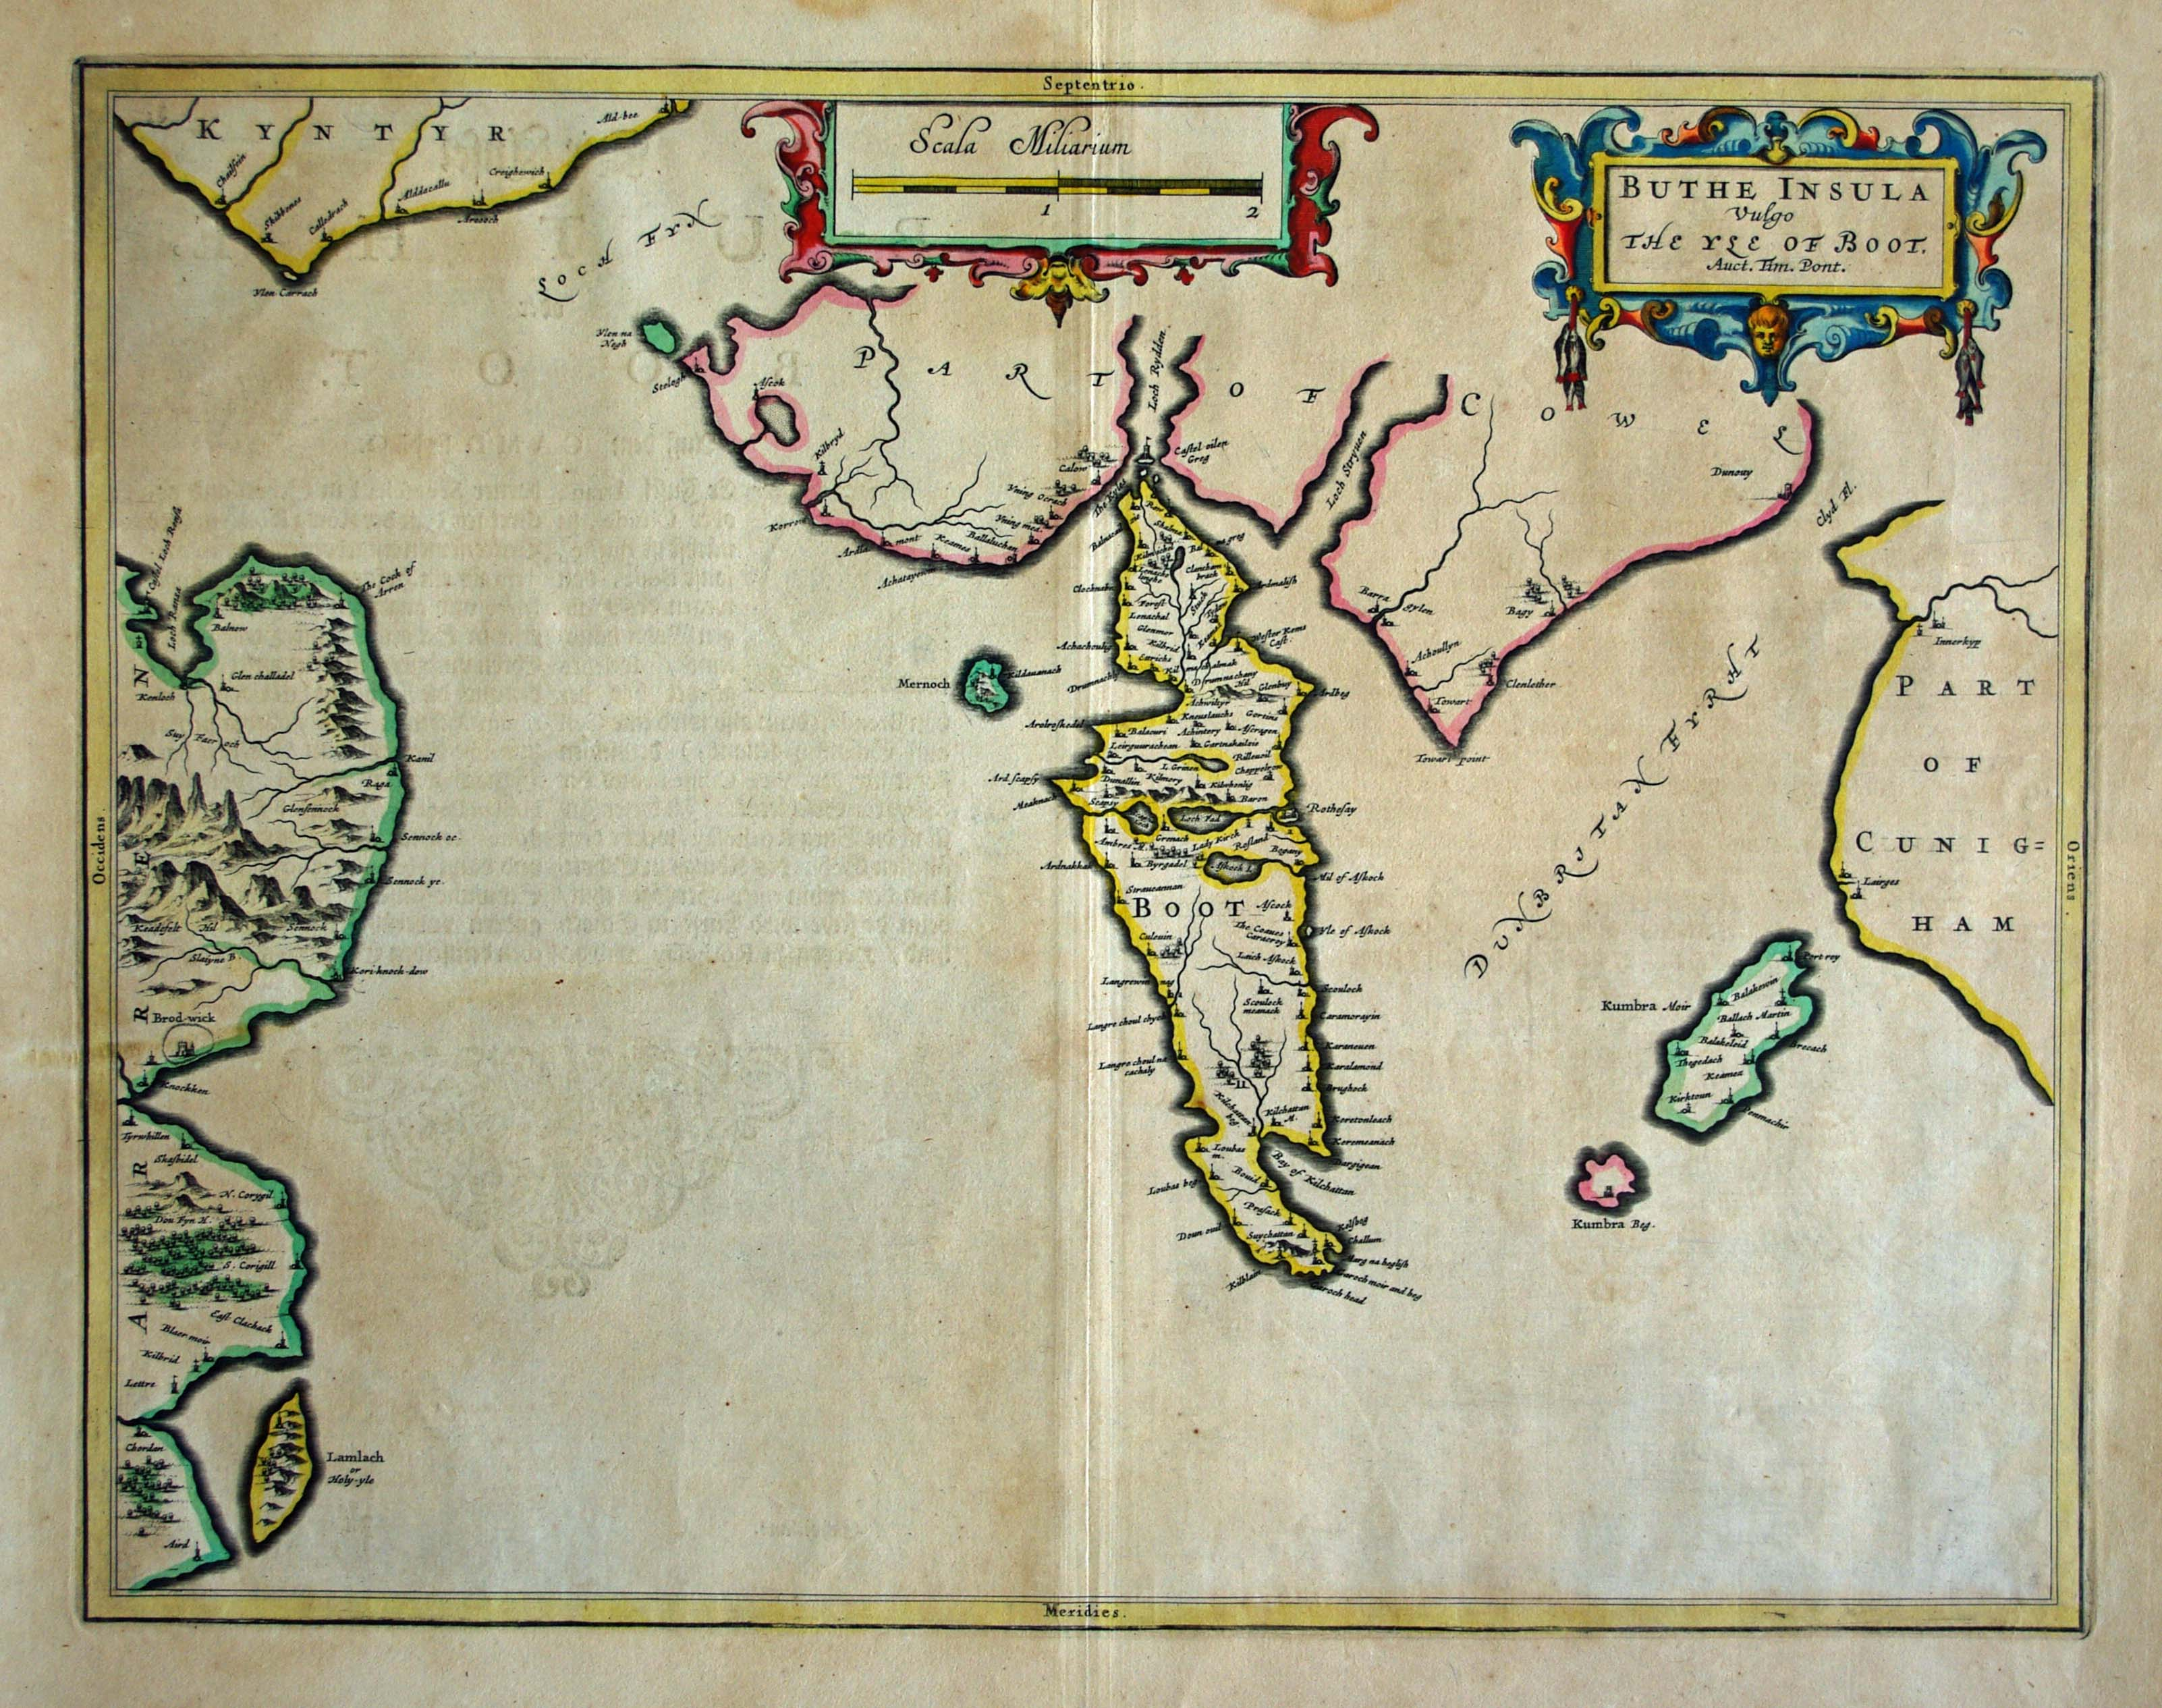 Blaeu's Bute, click for full res image